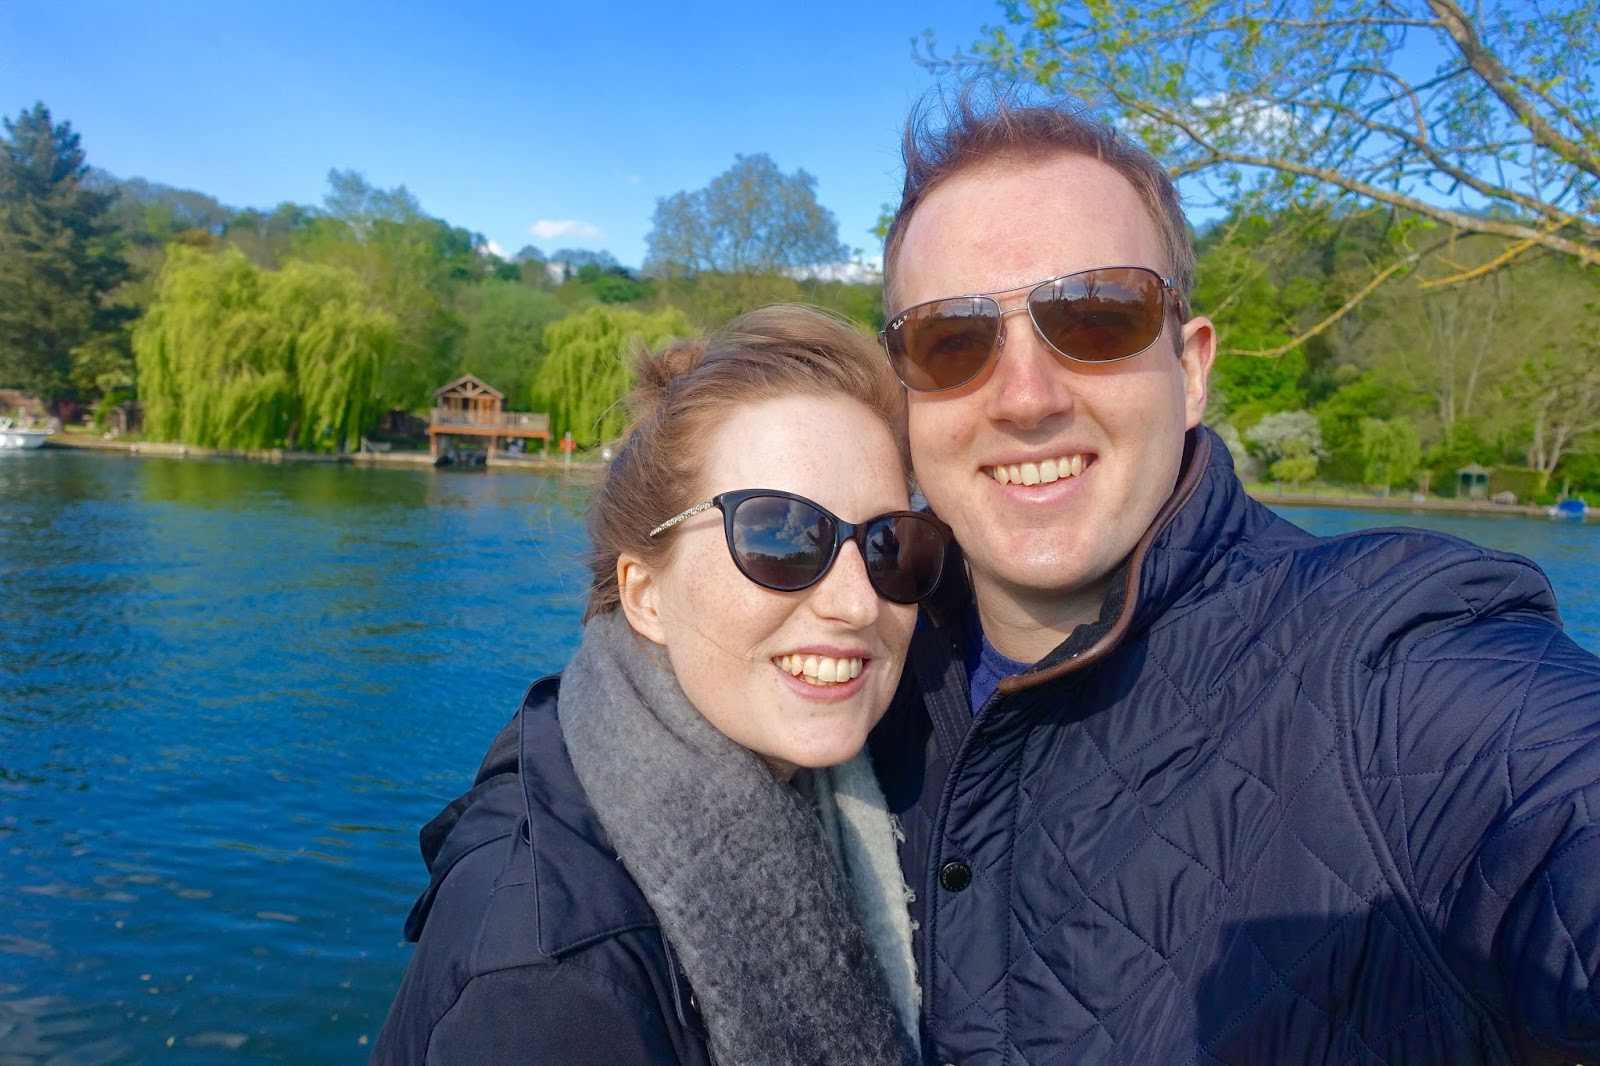 A weekend exploring Henley on Thames